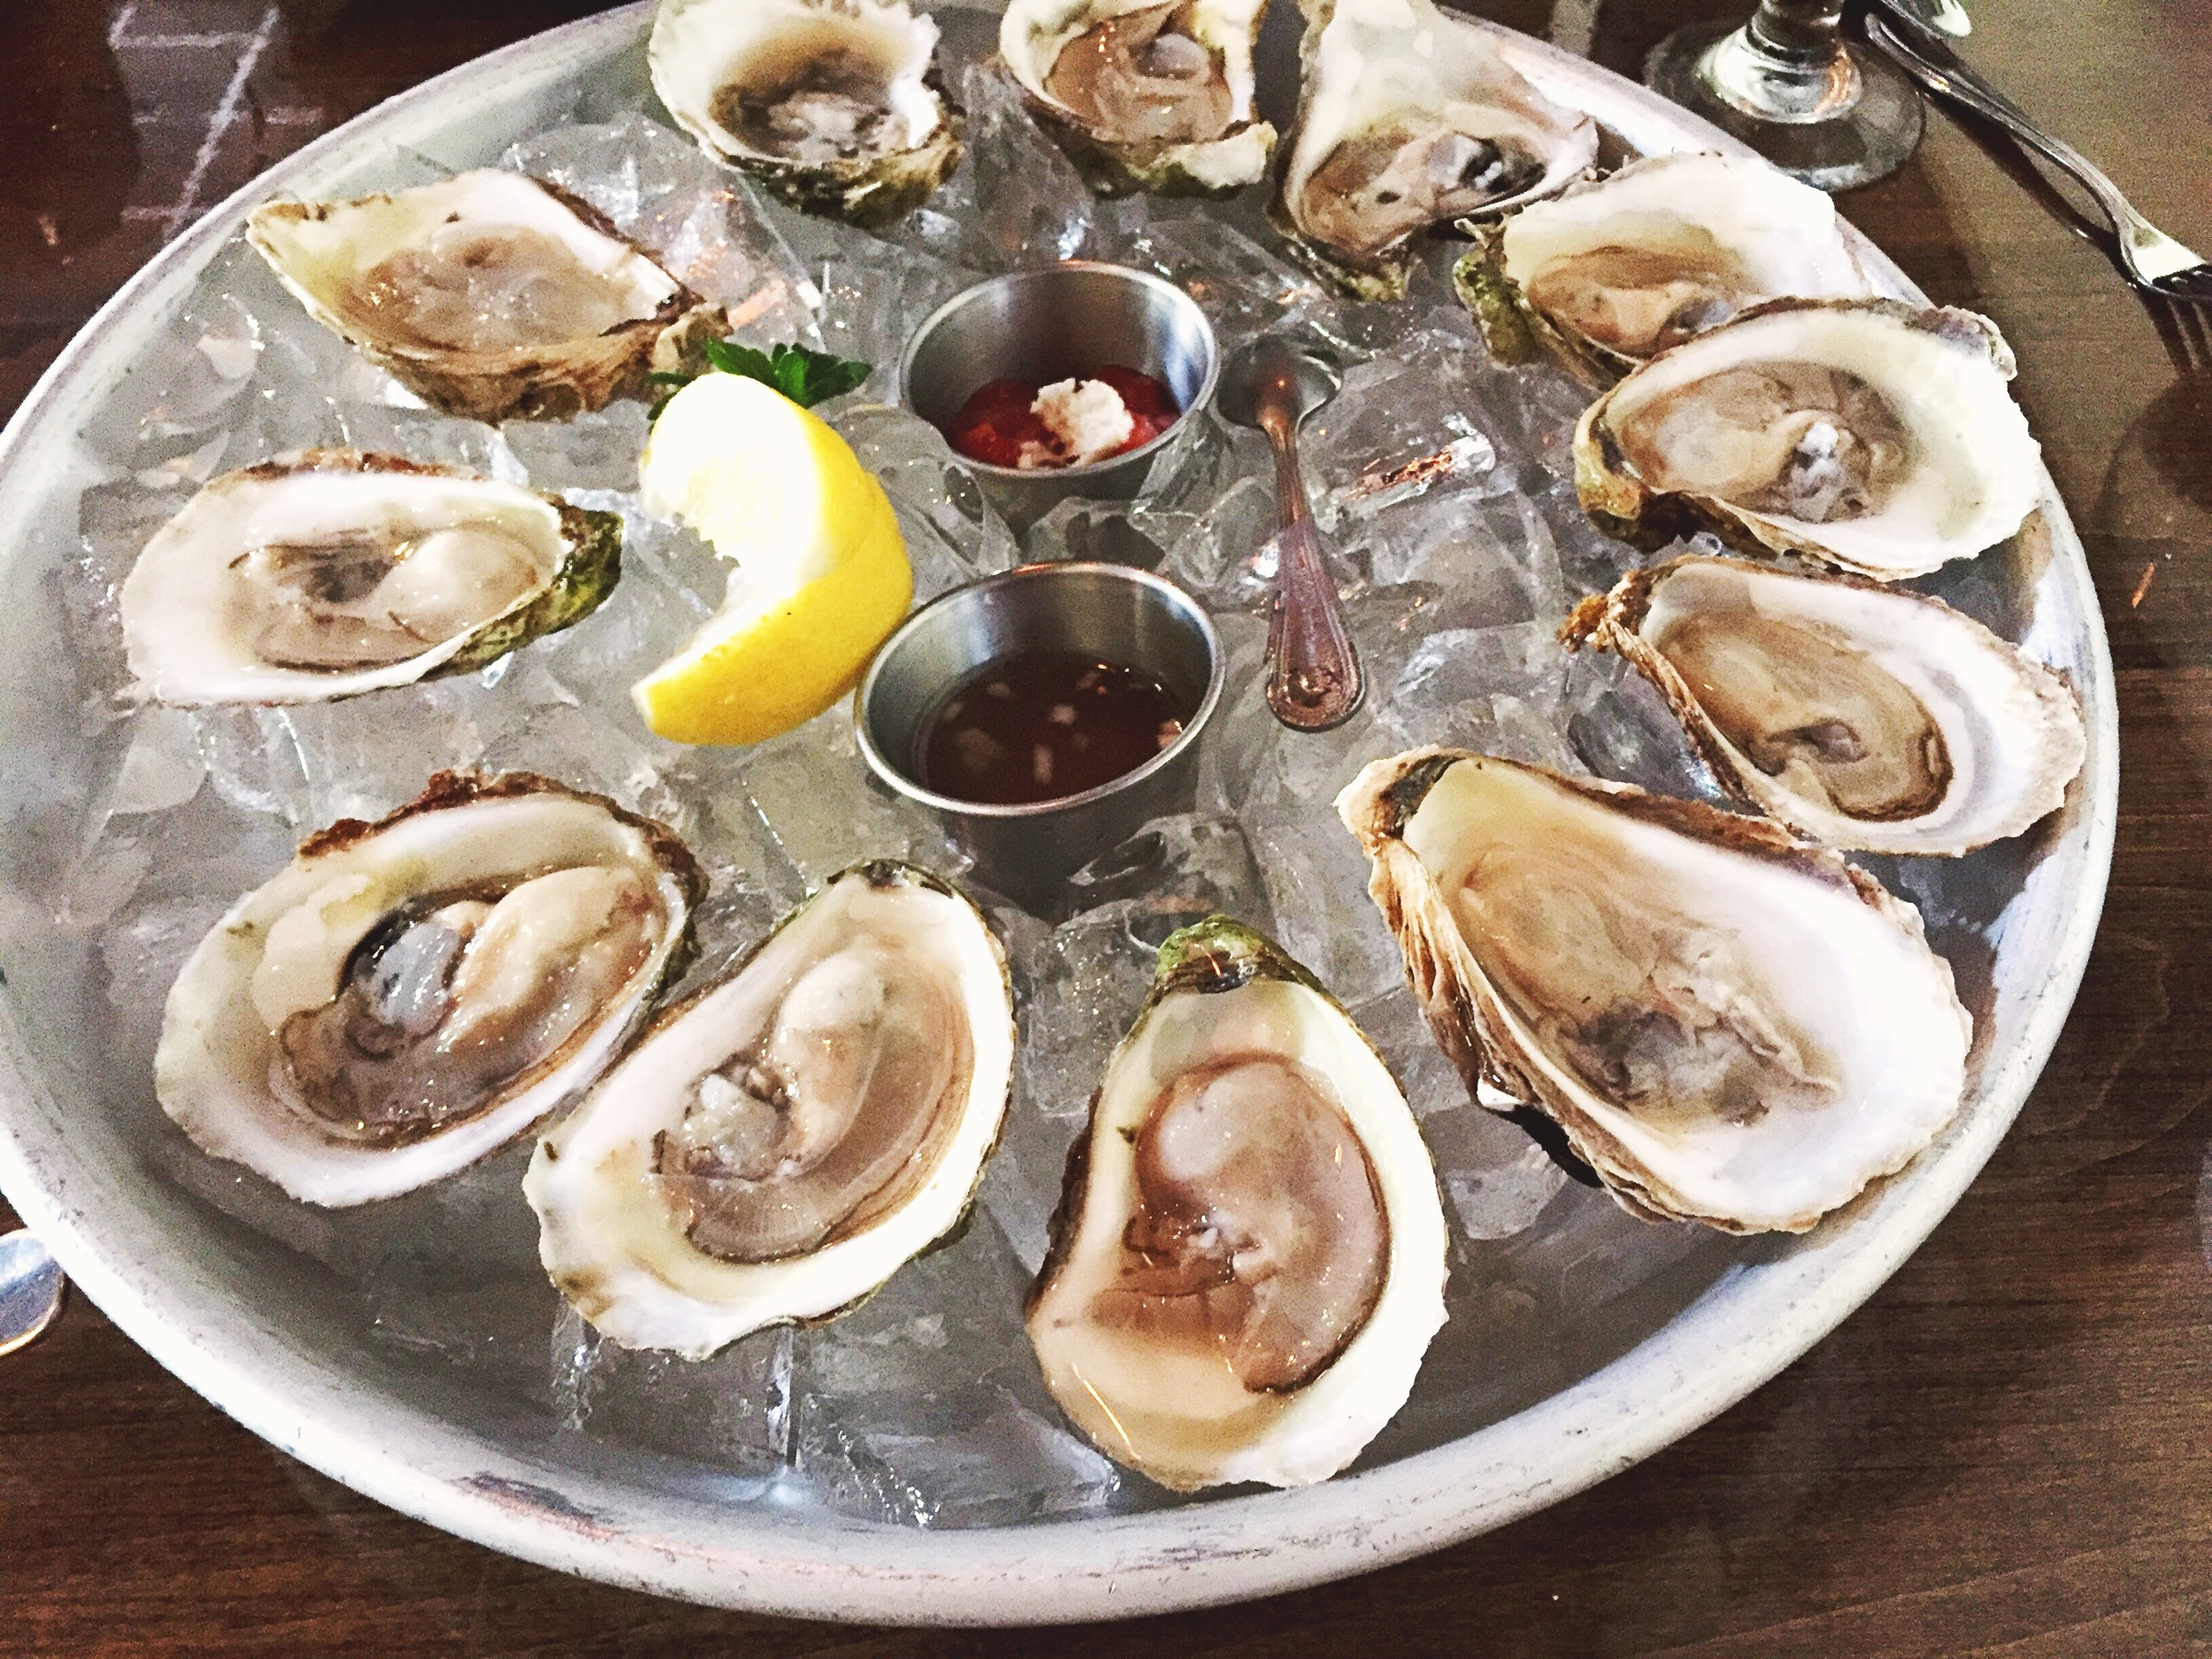 Oysters - my favorite food ever!